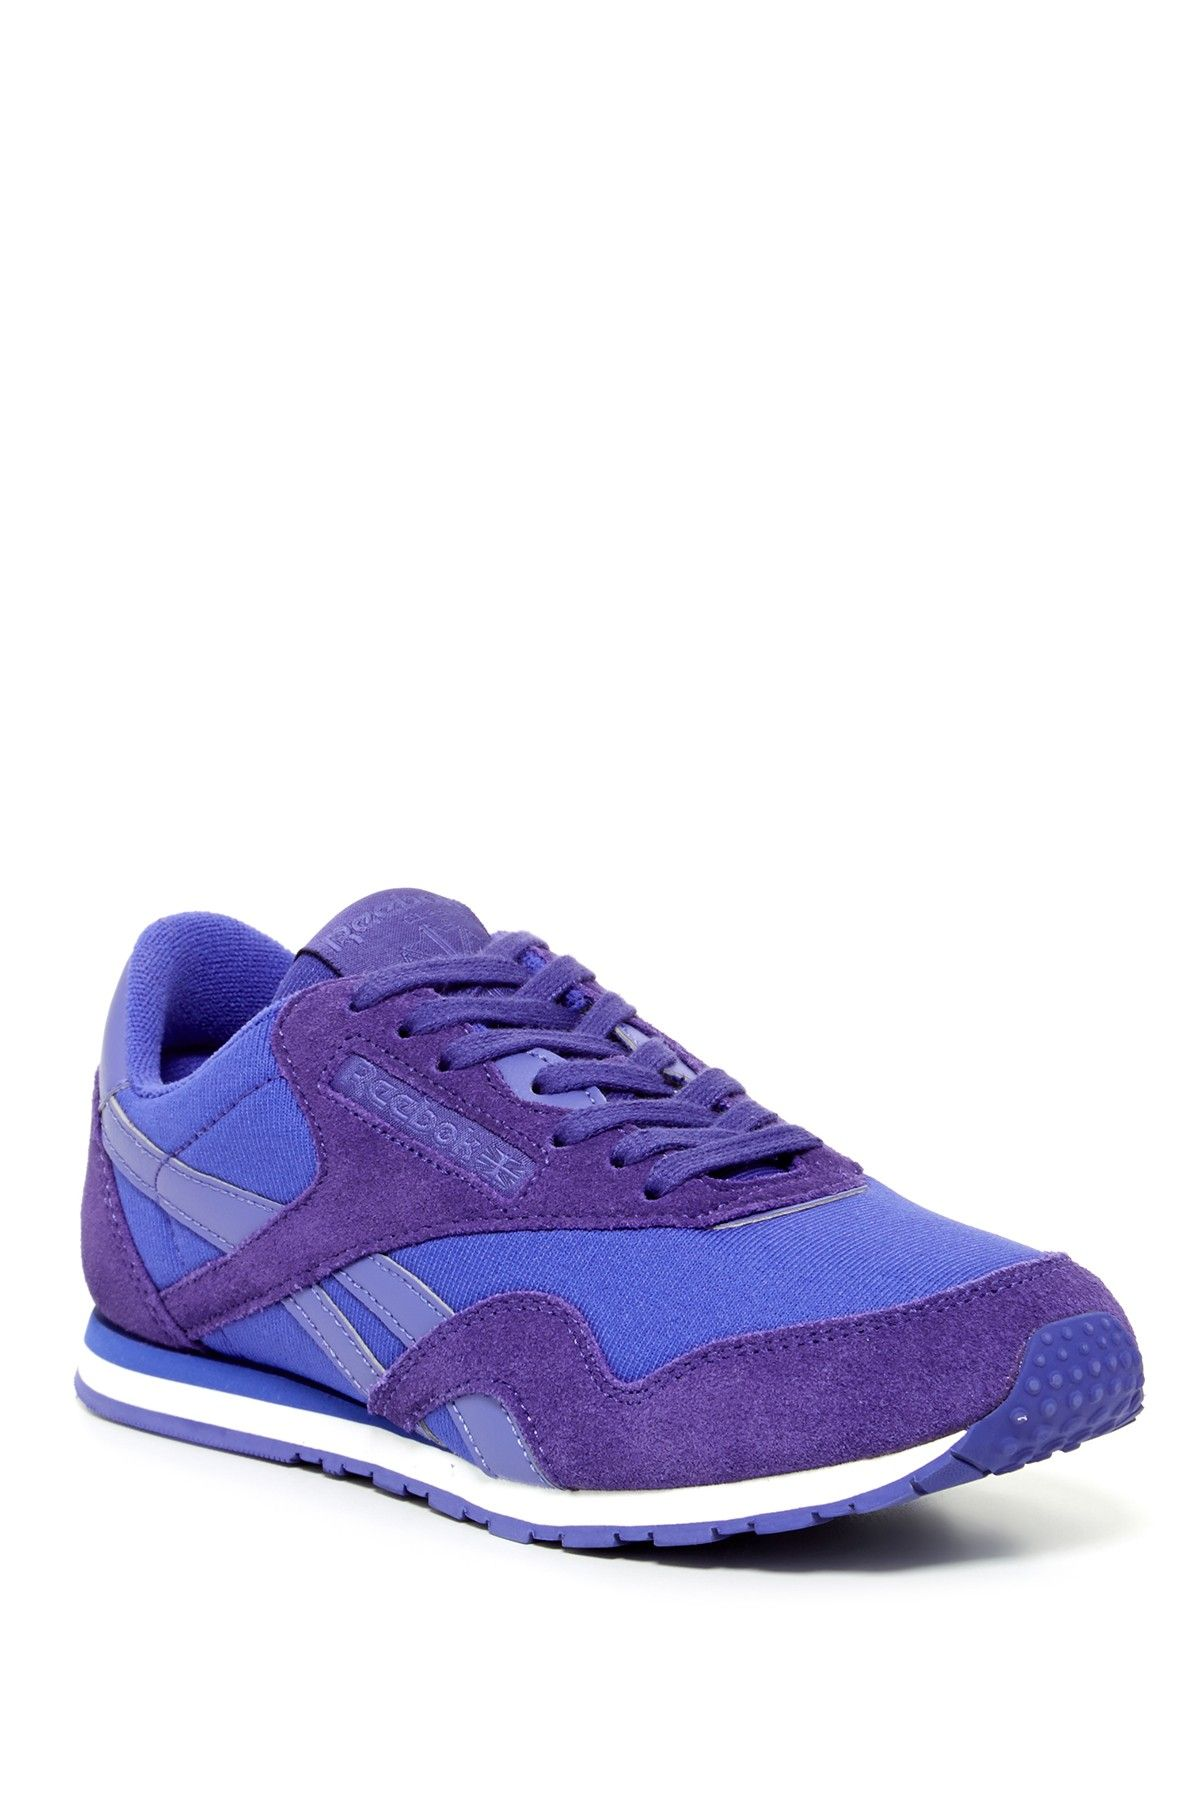 07f9ce109f58d4 Reebok Classic Nylon Slim Colors Sneaker by Reebok on  nordstrom rack